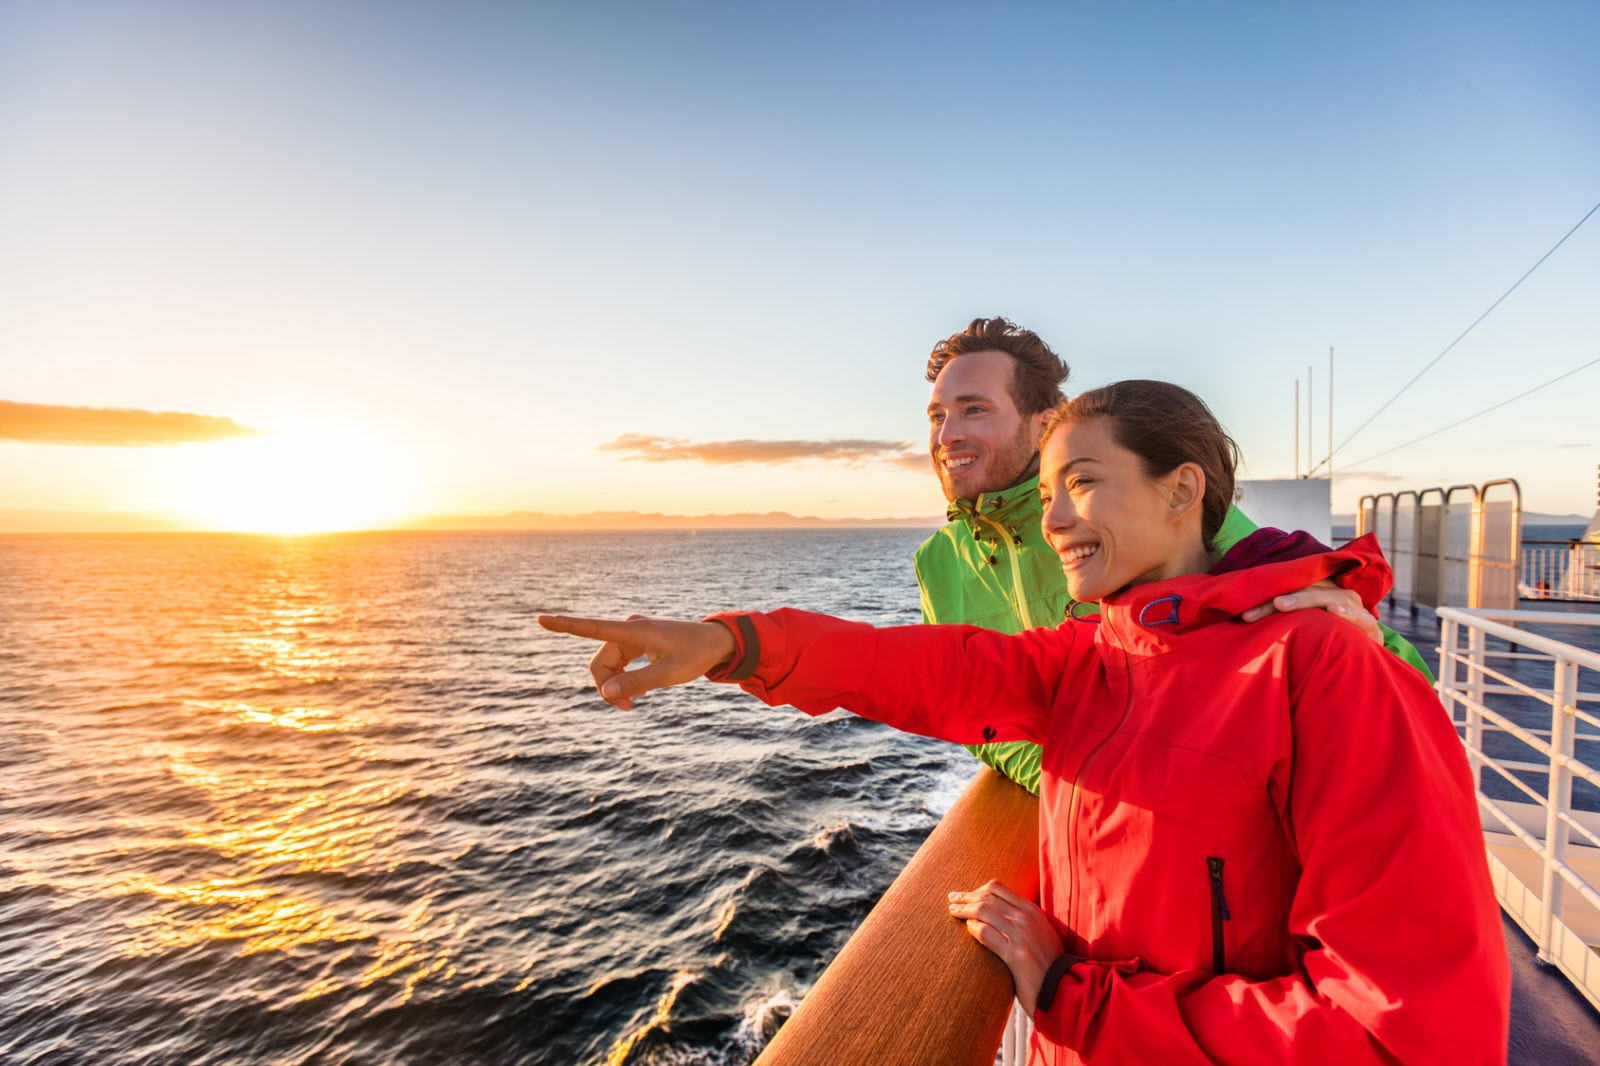 Cruise travel tourists couple pointing at sea view from ferry tour. Asian woman multiracial people traveling together at sunset.